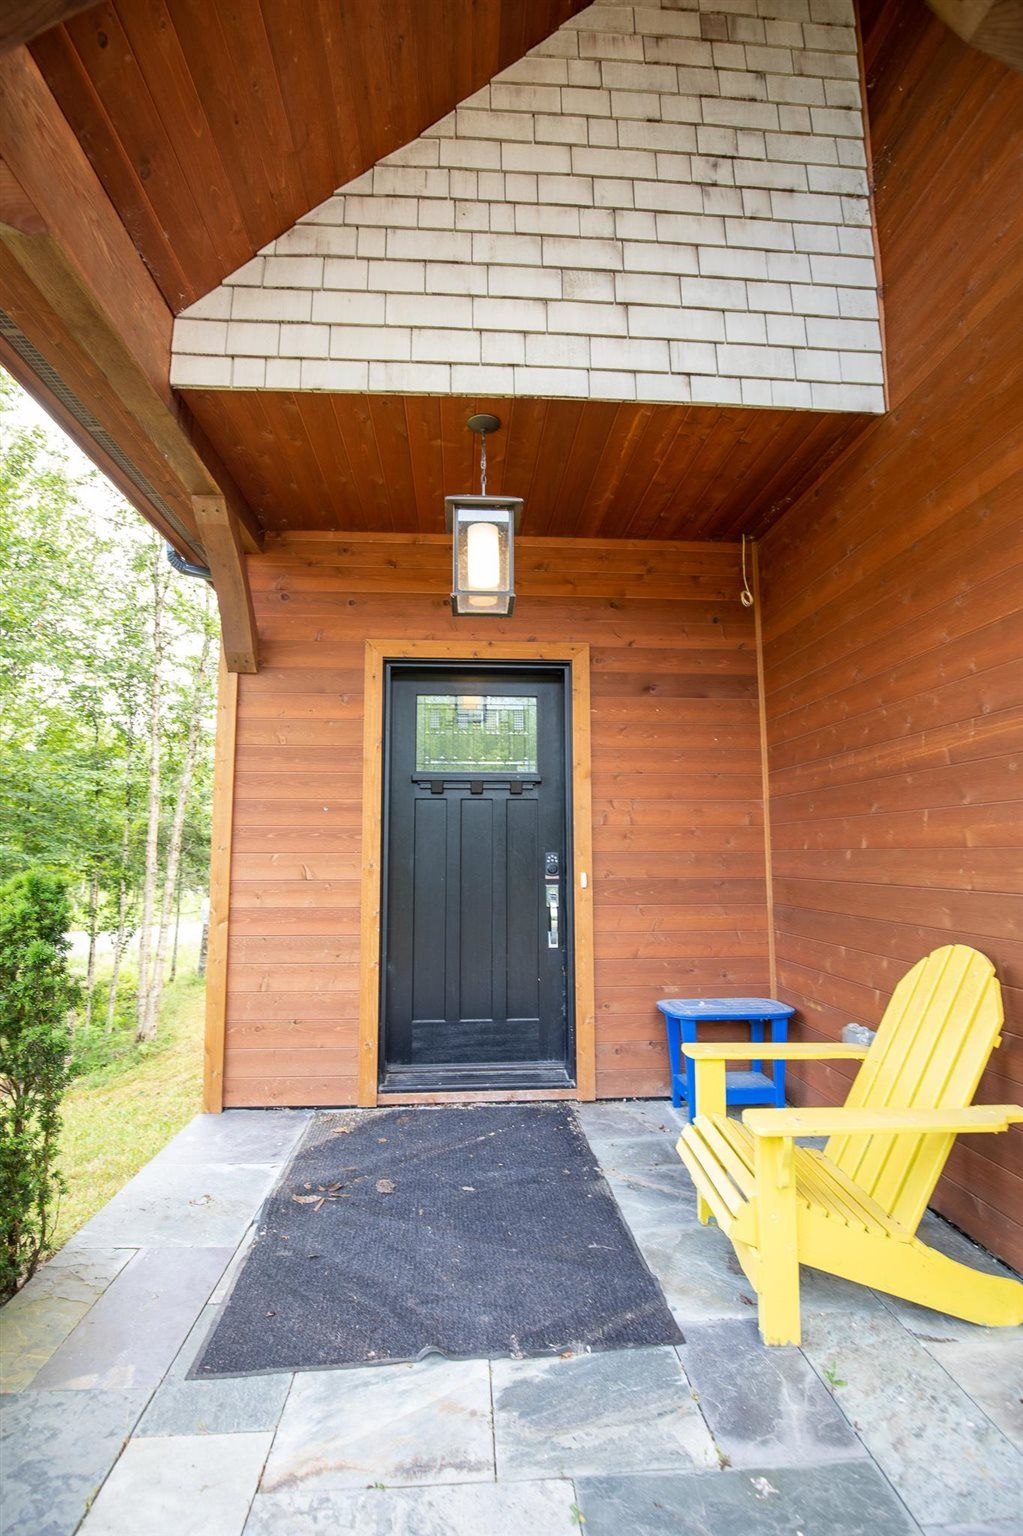 Photo 3: Photos: 7 Black Cherry Lane in Ardoise: 403-Hants County Residential for sale (Annapolis Valley)  : MLS®# 202118682